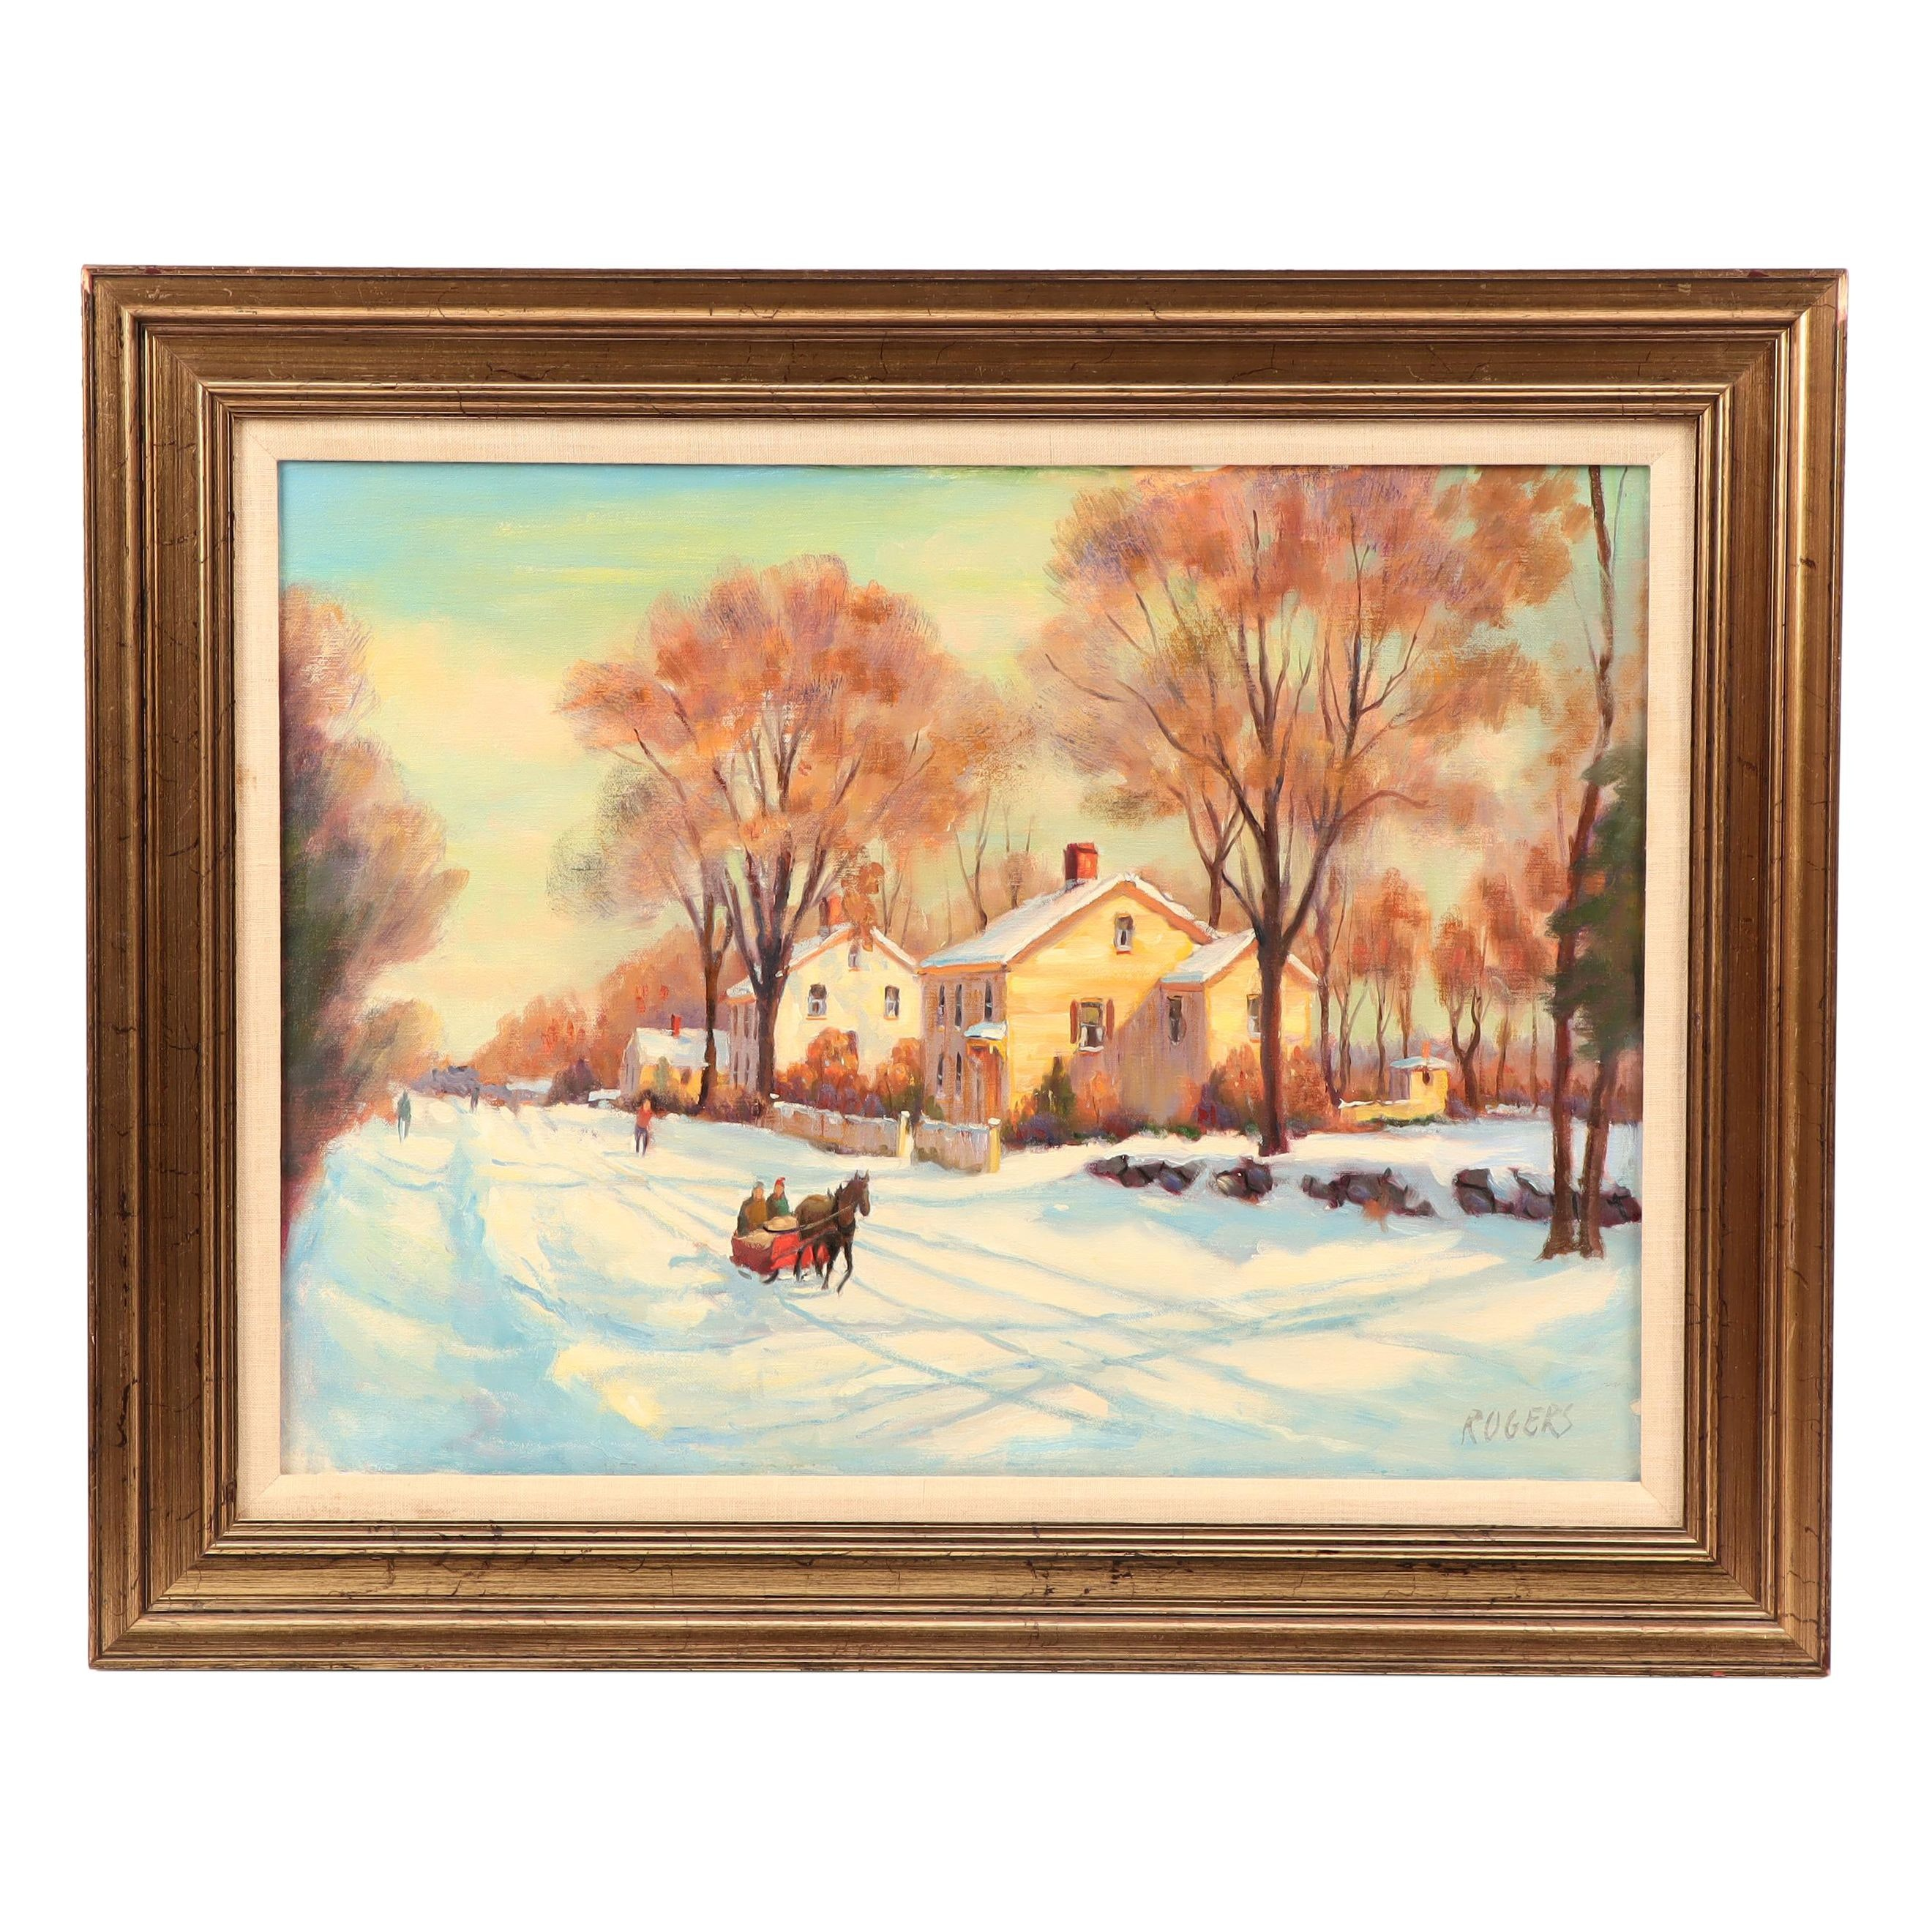 Rogers Oil Painting of Winter Village Scene with Horse Drawn Carriage